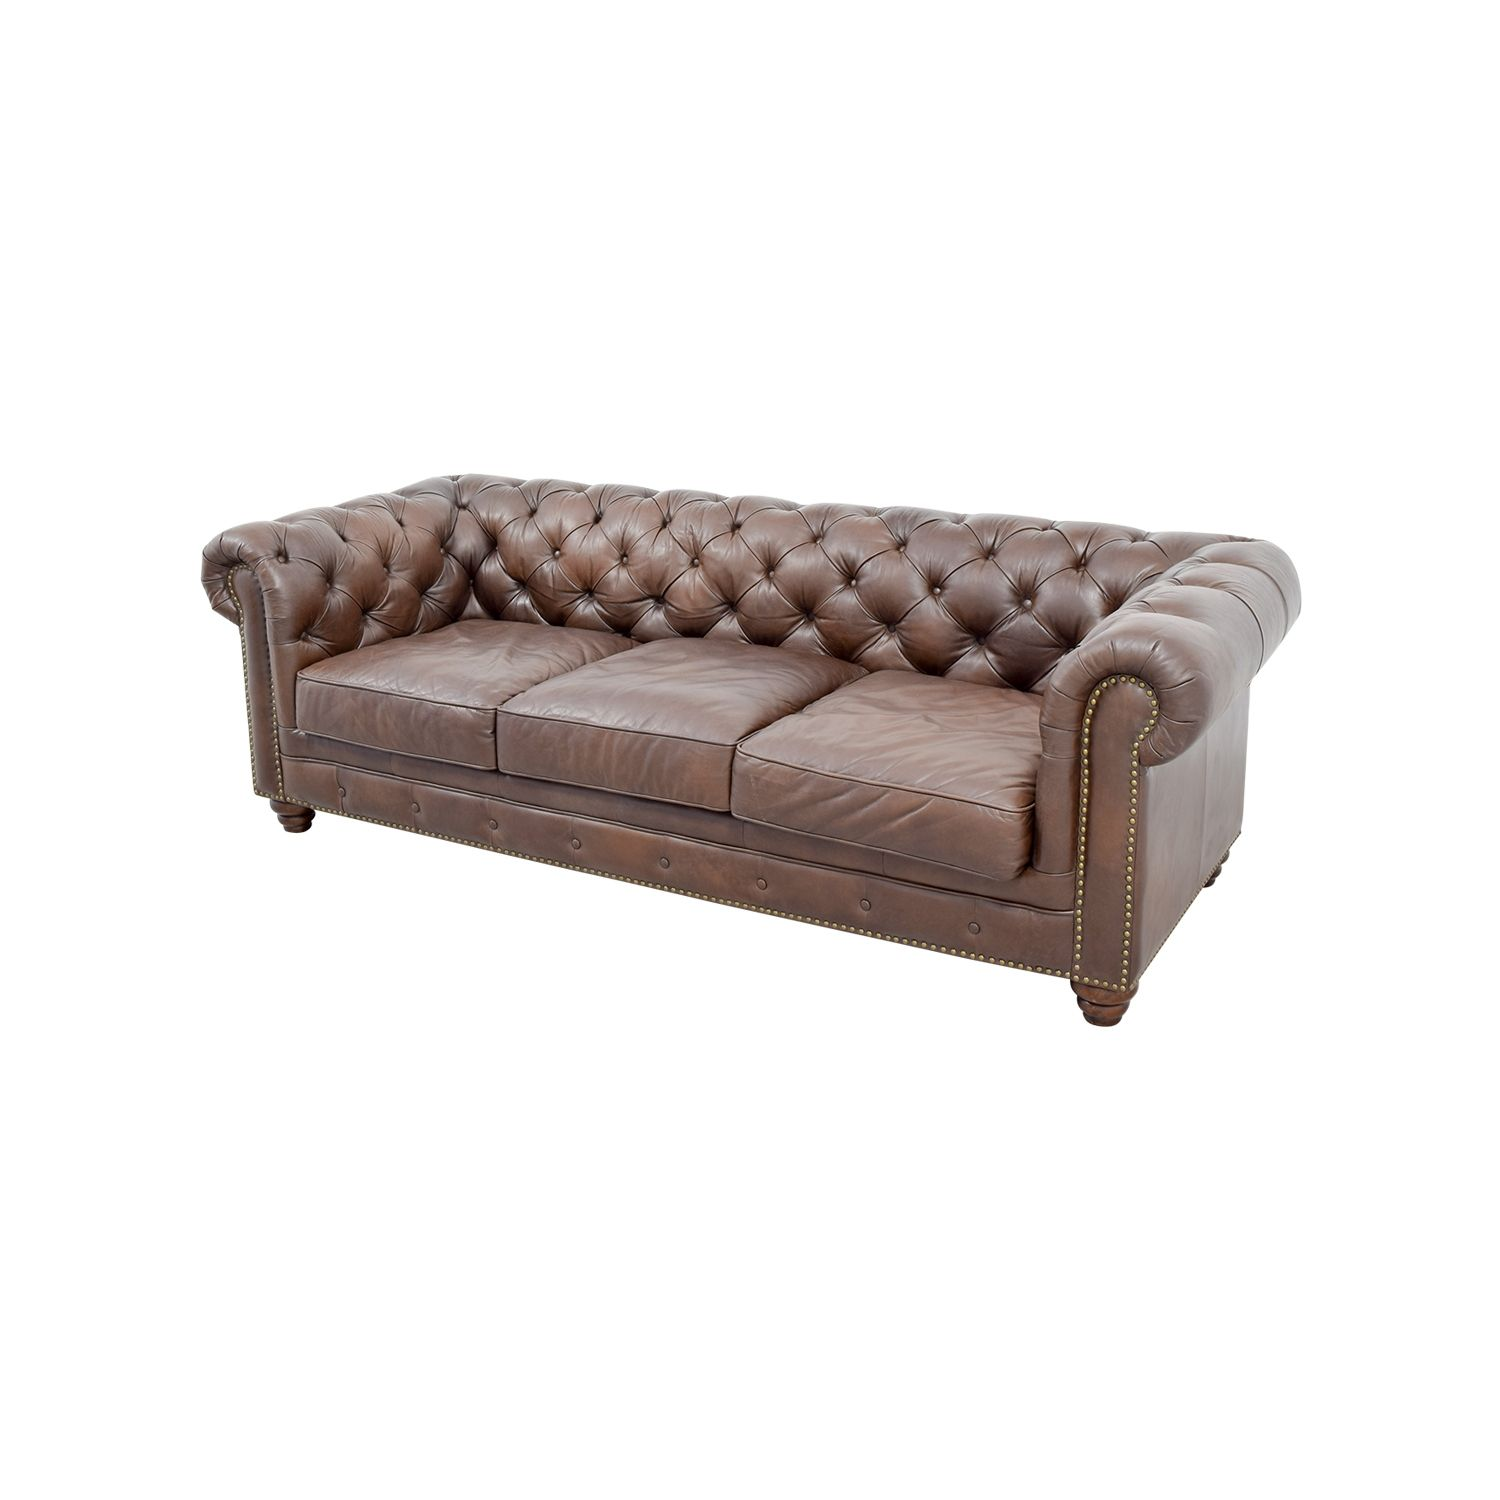 Corinthian Leather Couches